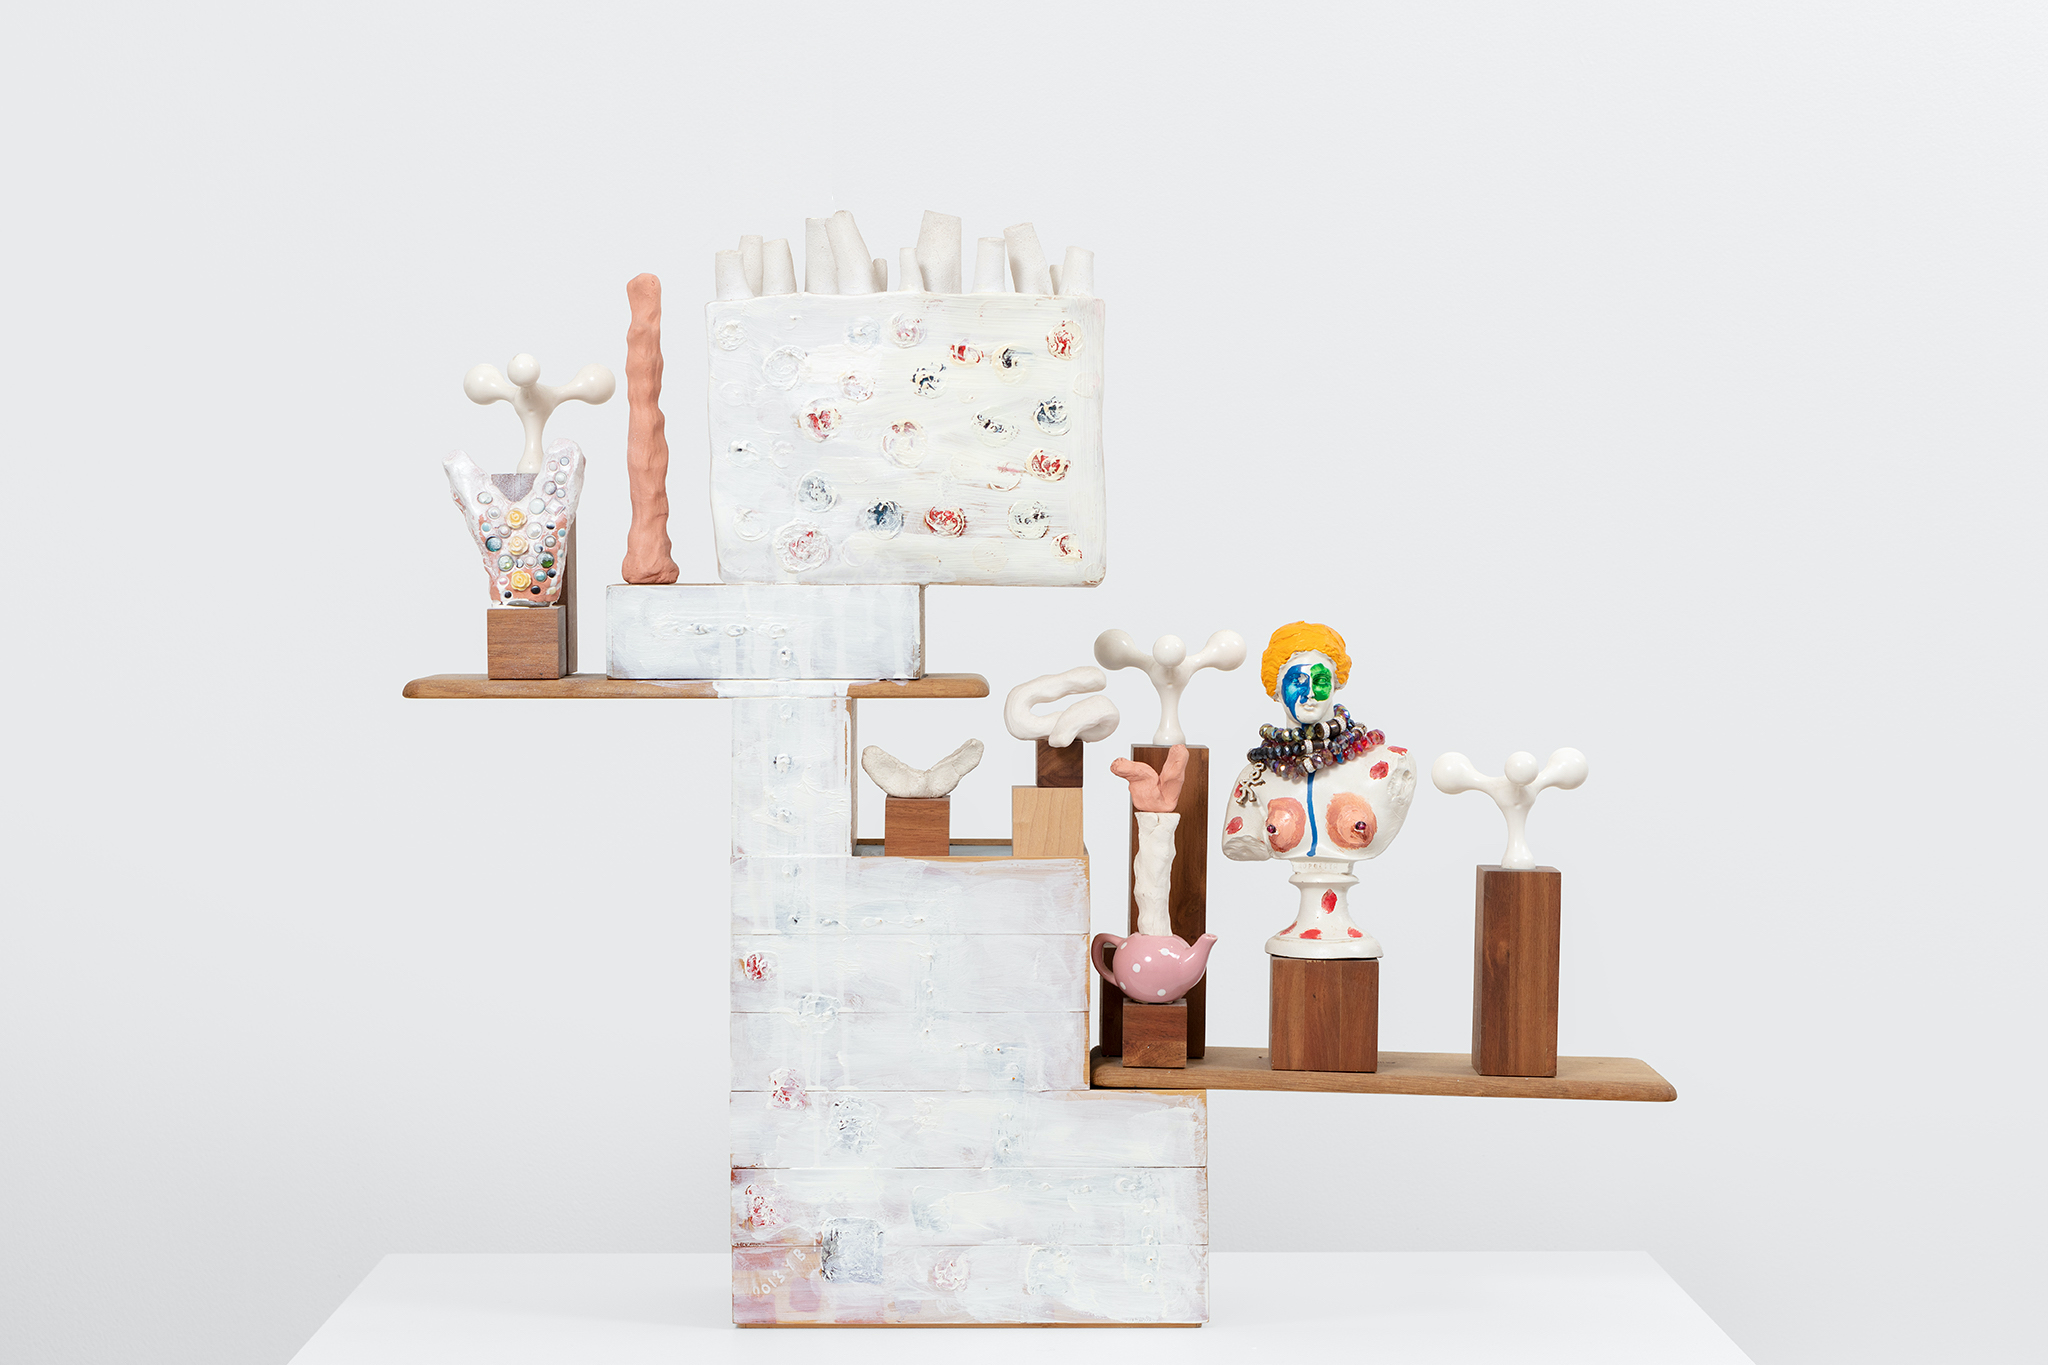 Yngve Benum, Handkerchief, 2014, mixed media sculpture, 83 x 85 x 16 cm